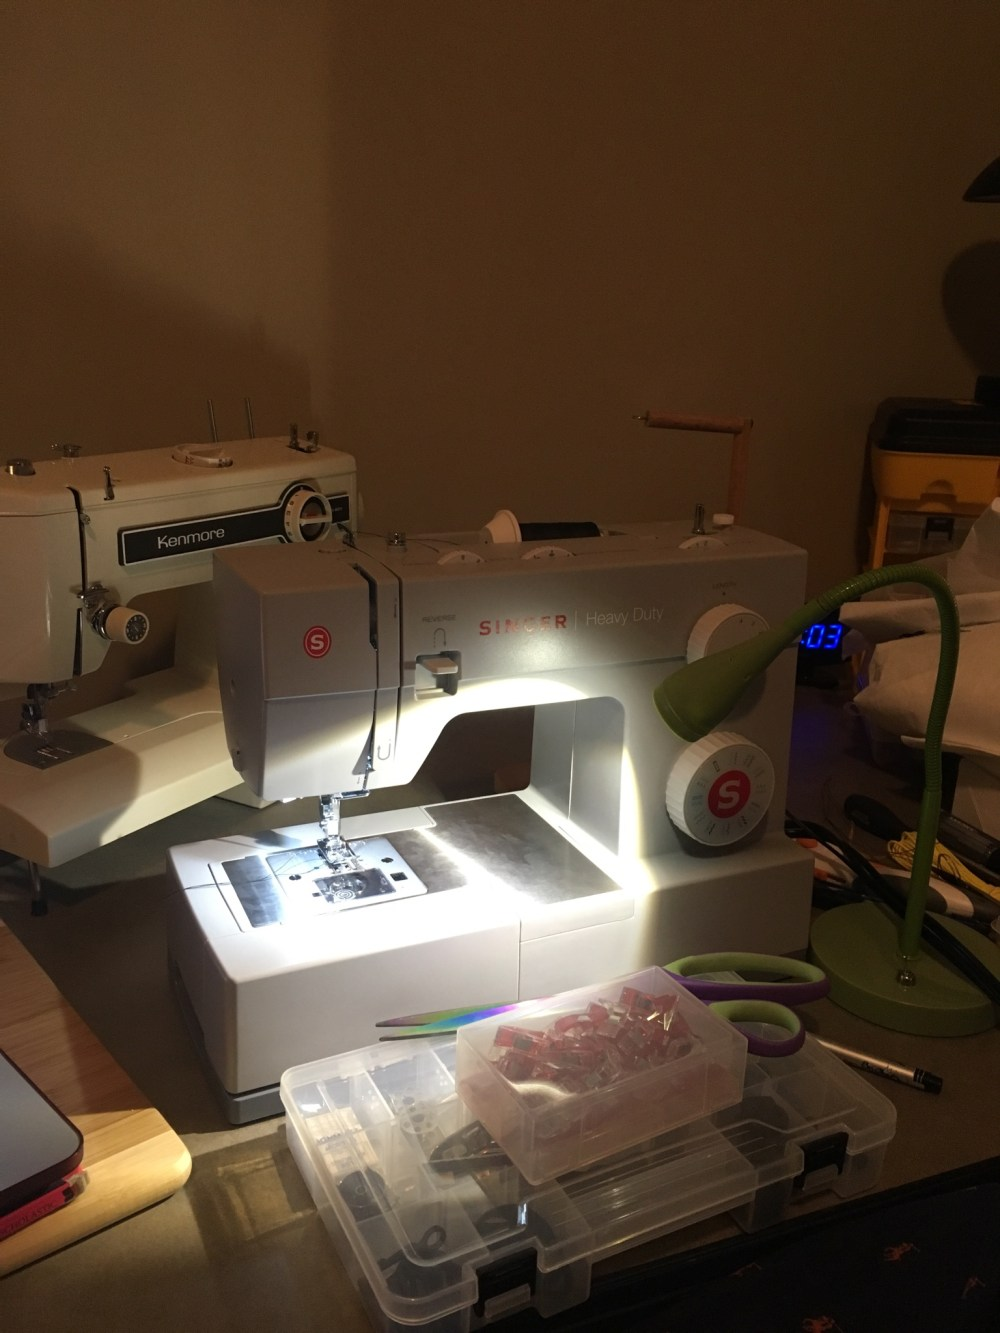 medium resolution of update just got the machine today and man am i impressed for 130 it sews like a dream when i first got the kenmore you see in the background i fought